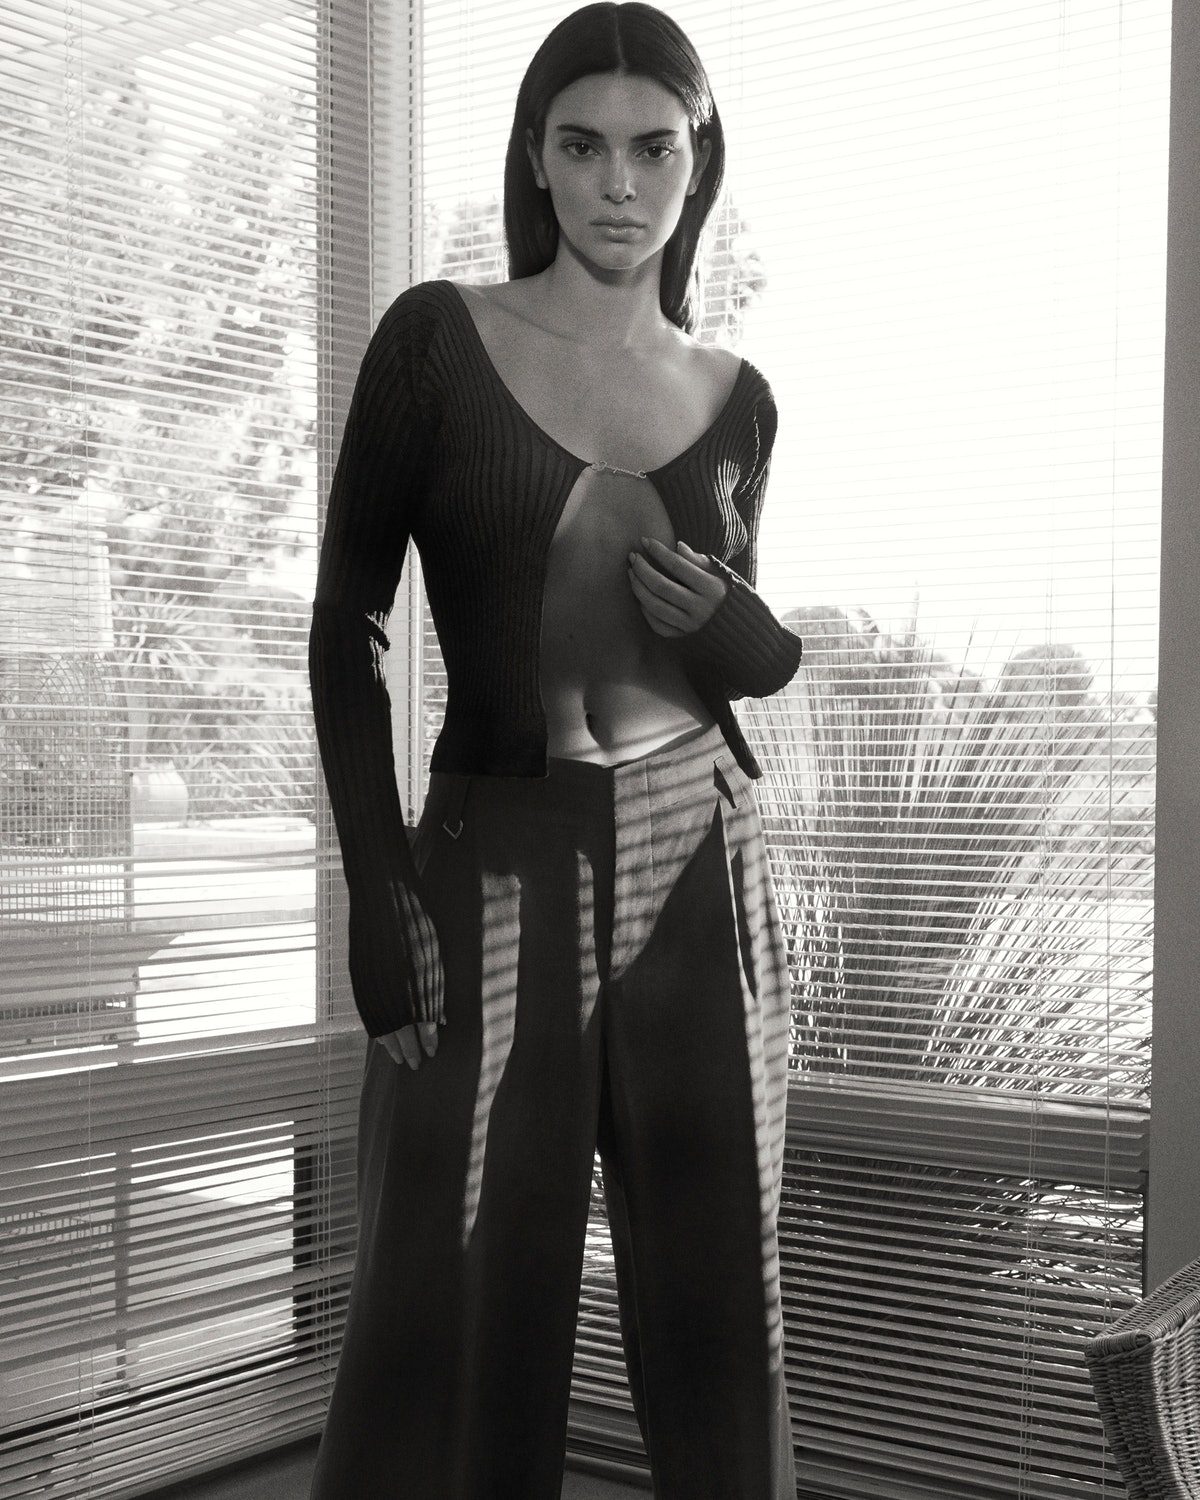 Kendall Jenner wears Jacquemus cardigan in her new campaign for FWRD.